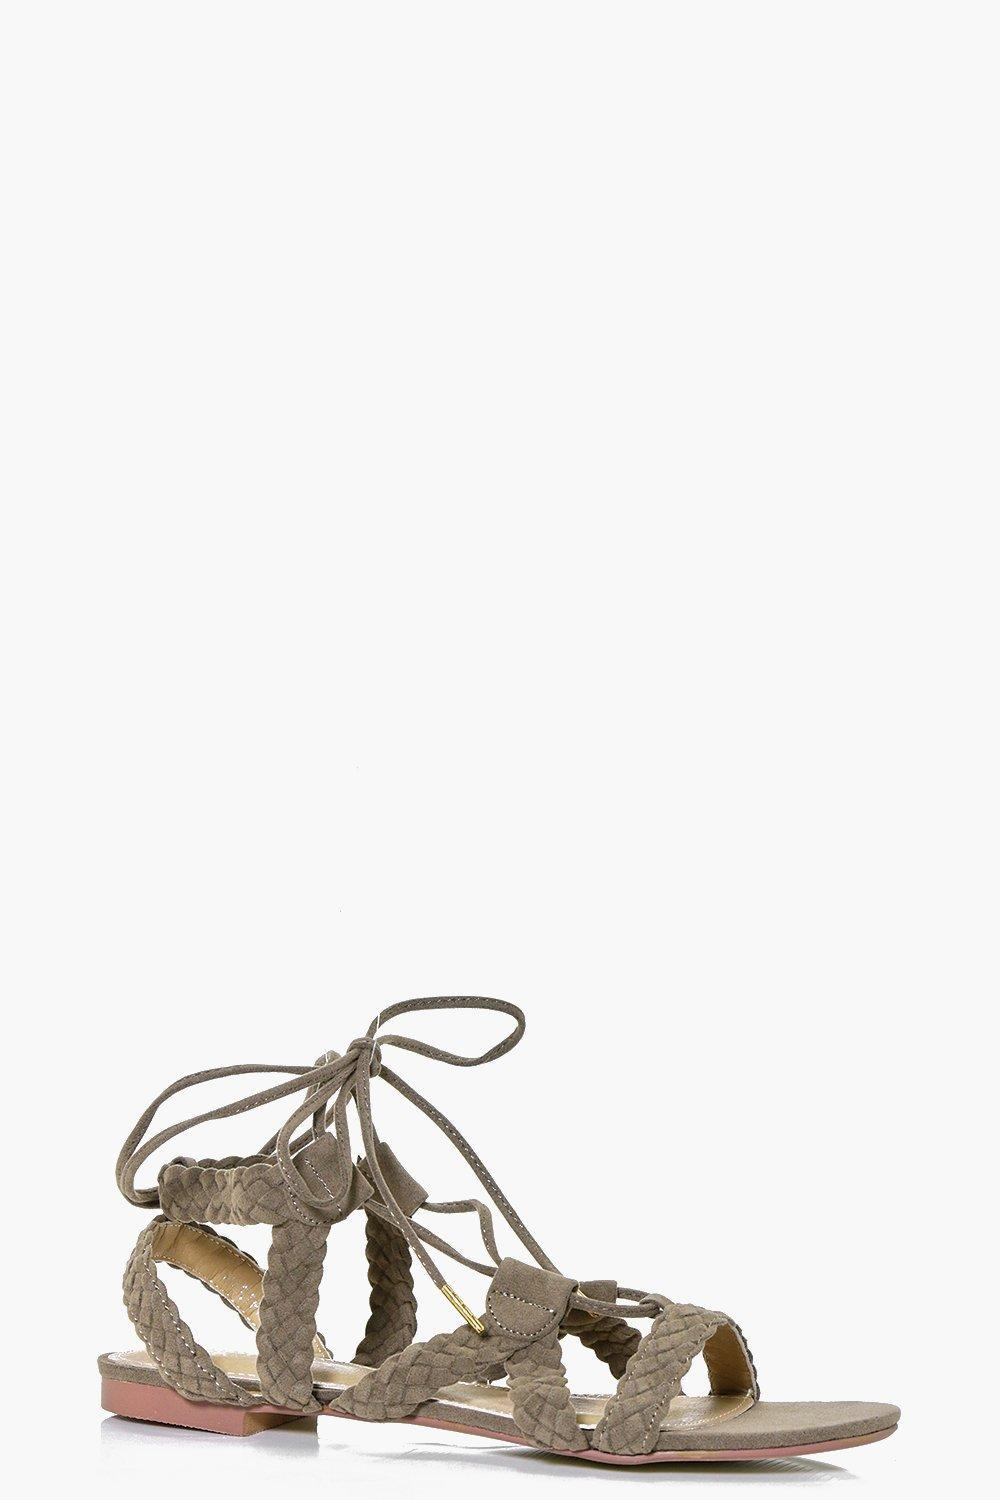 Plaited Lace Up Sandal Khaki - predominant colour: khaki; occasions: casual, holiday; material: faux leather; heel height: flat; ankle detail: ankle tie; heel: block; toe: open toe/peeptoe; style: gladiators; finish: plain; pattern: plain; season: s/s 2016; wardrobe: basic